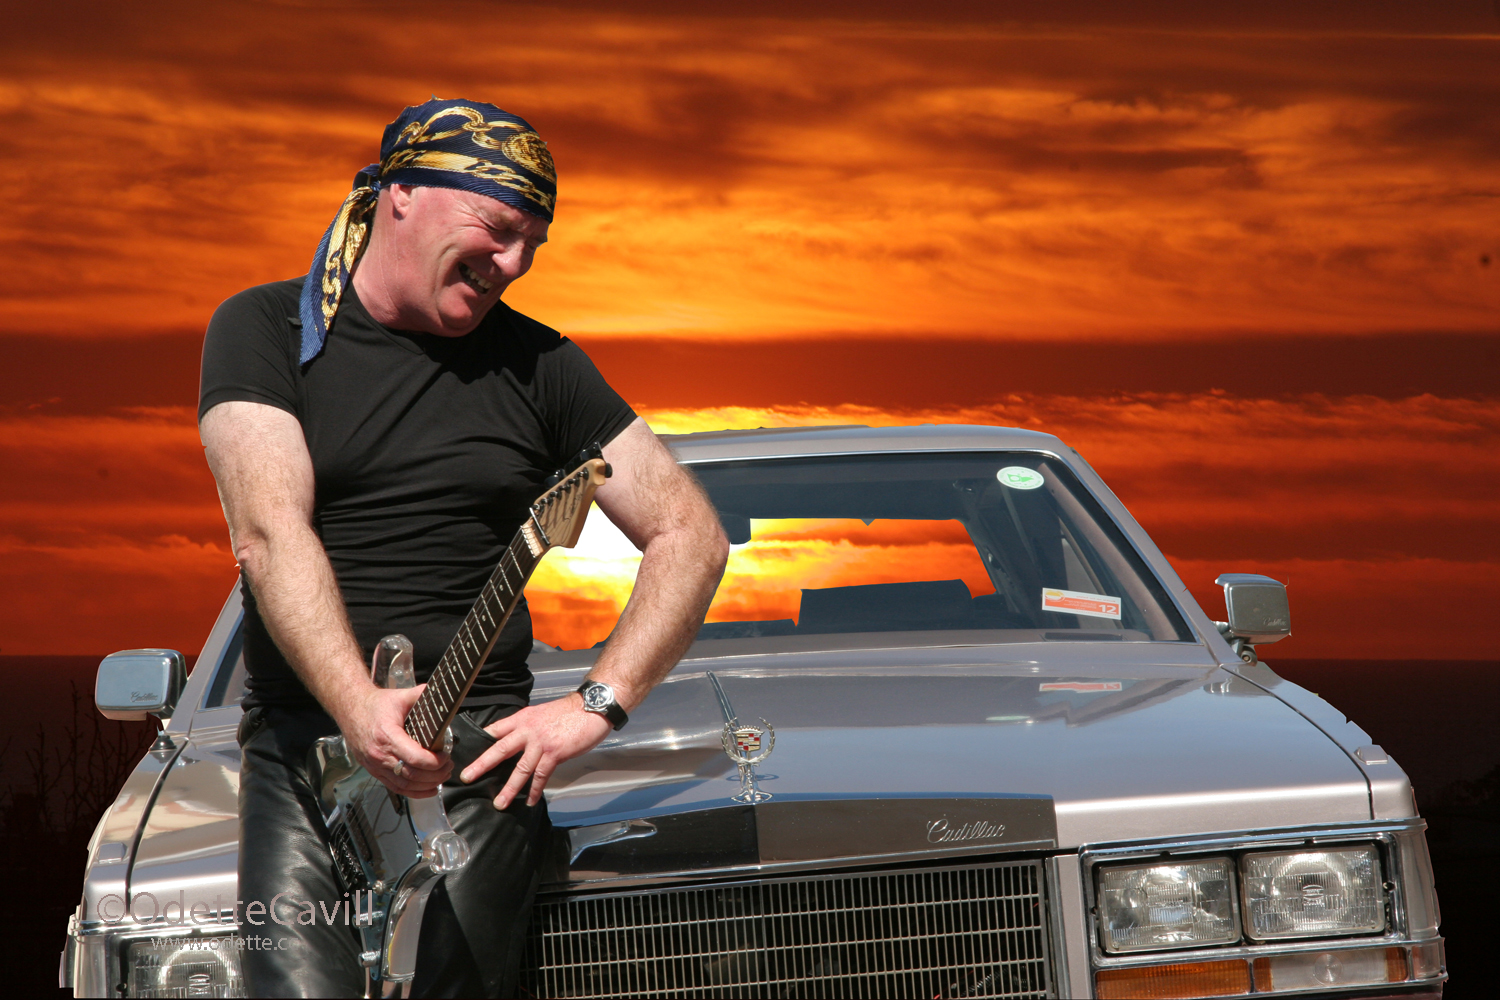 Michael Powers  (Singer/Guitarist/Fremantle Identity)  This image was made combining a sunset taken from my porch and Michael in front of this Cadillac. It was one of my first attempt at photoshop. Michael used this image for promotional work.